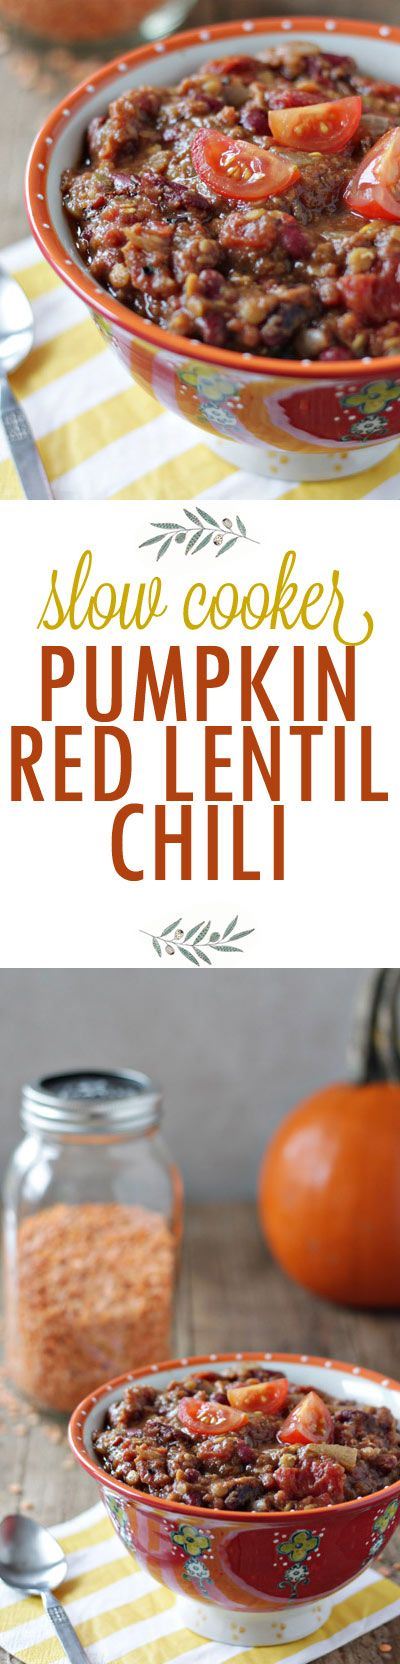 This thick, hearty, and vegan Crock Pot Pumpkin Red Lentil Chili recipe is just different enough to be special, but still tastes mainstream enough to appeal to most everyone. It's the perfect fall chili!